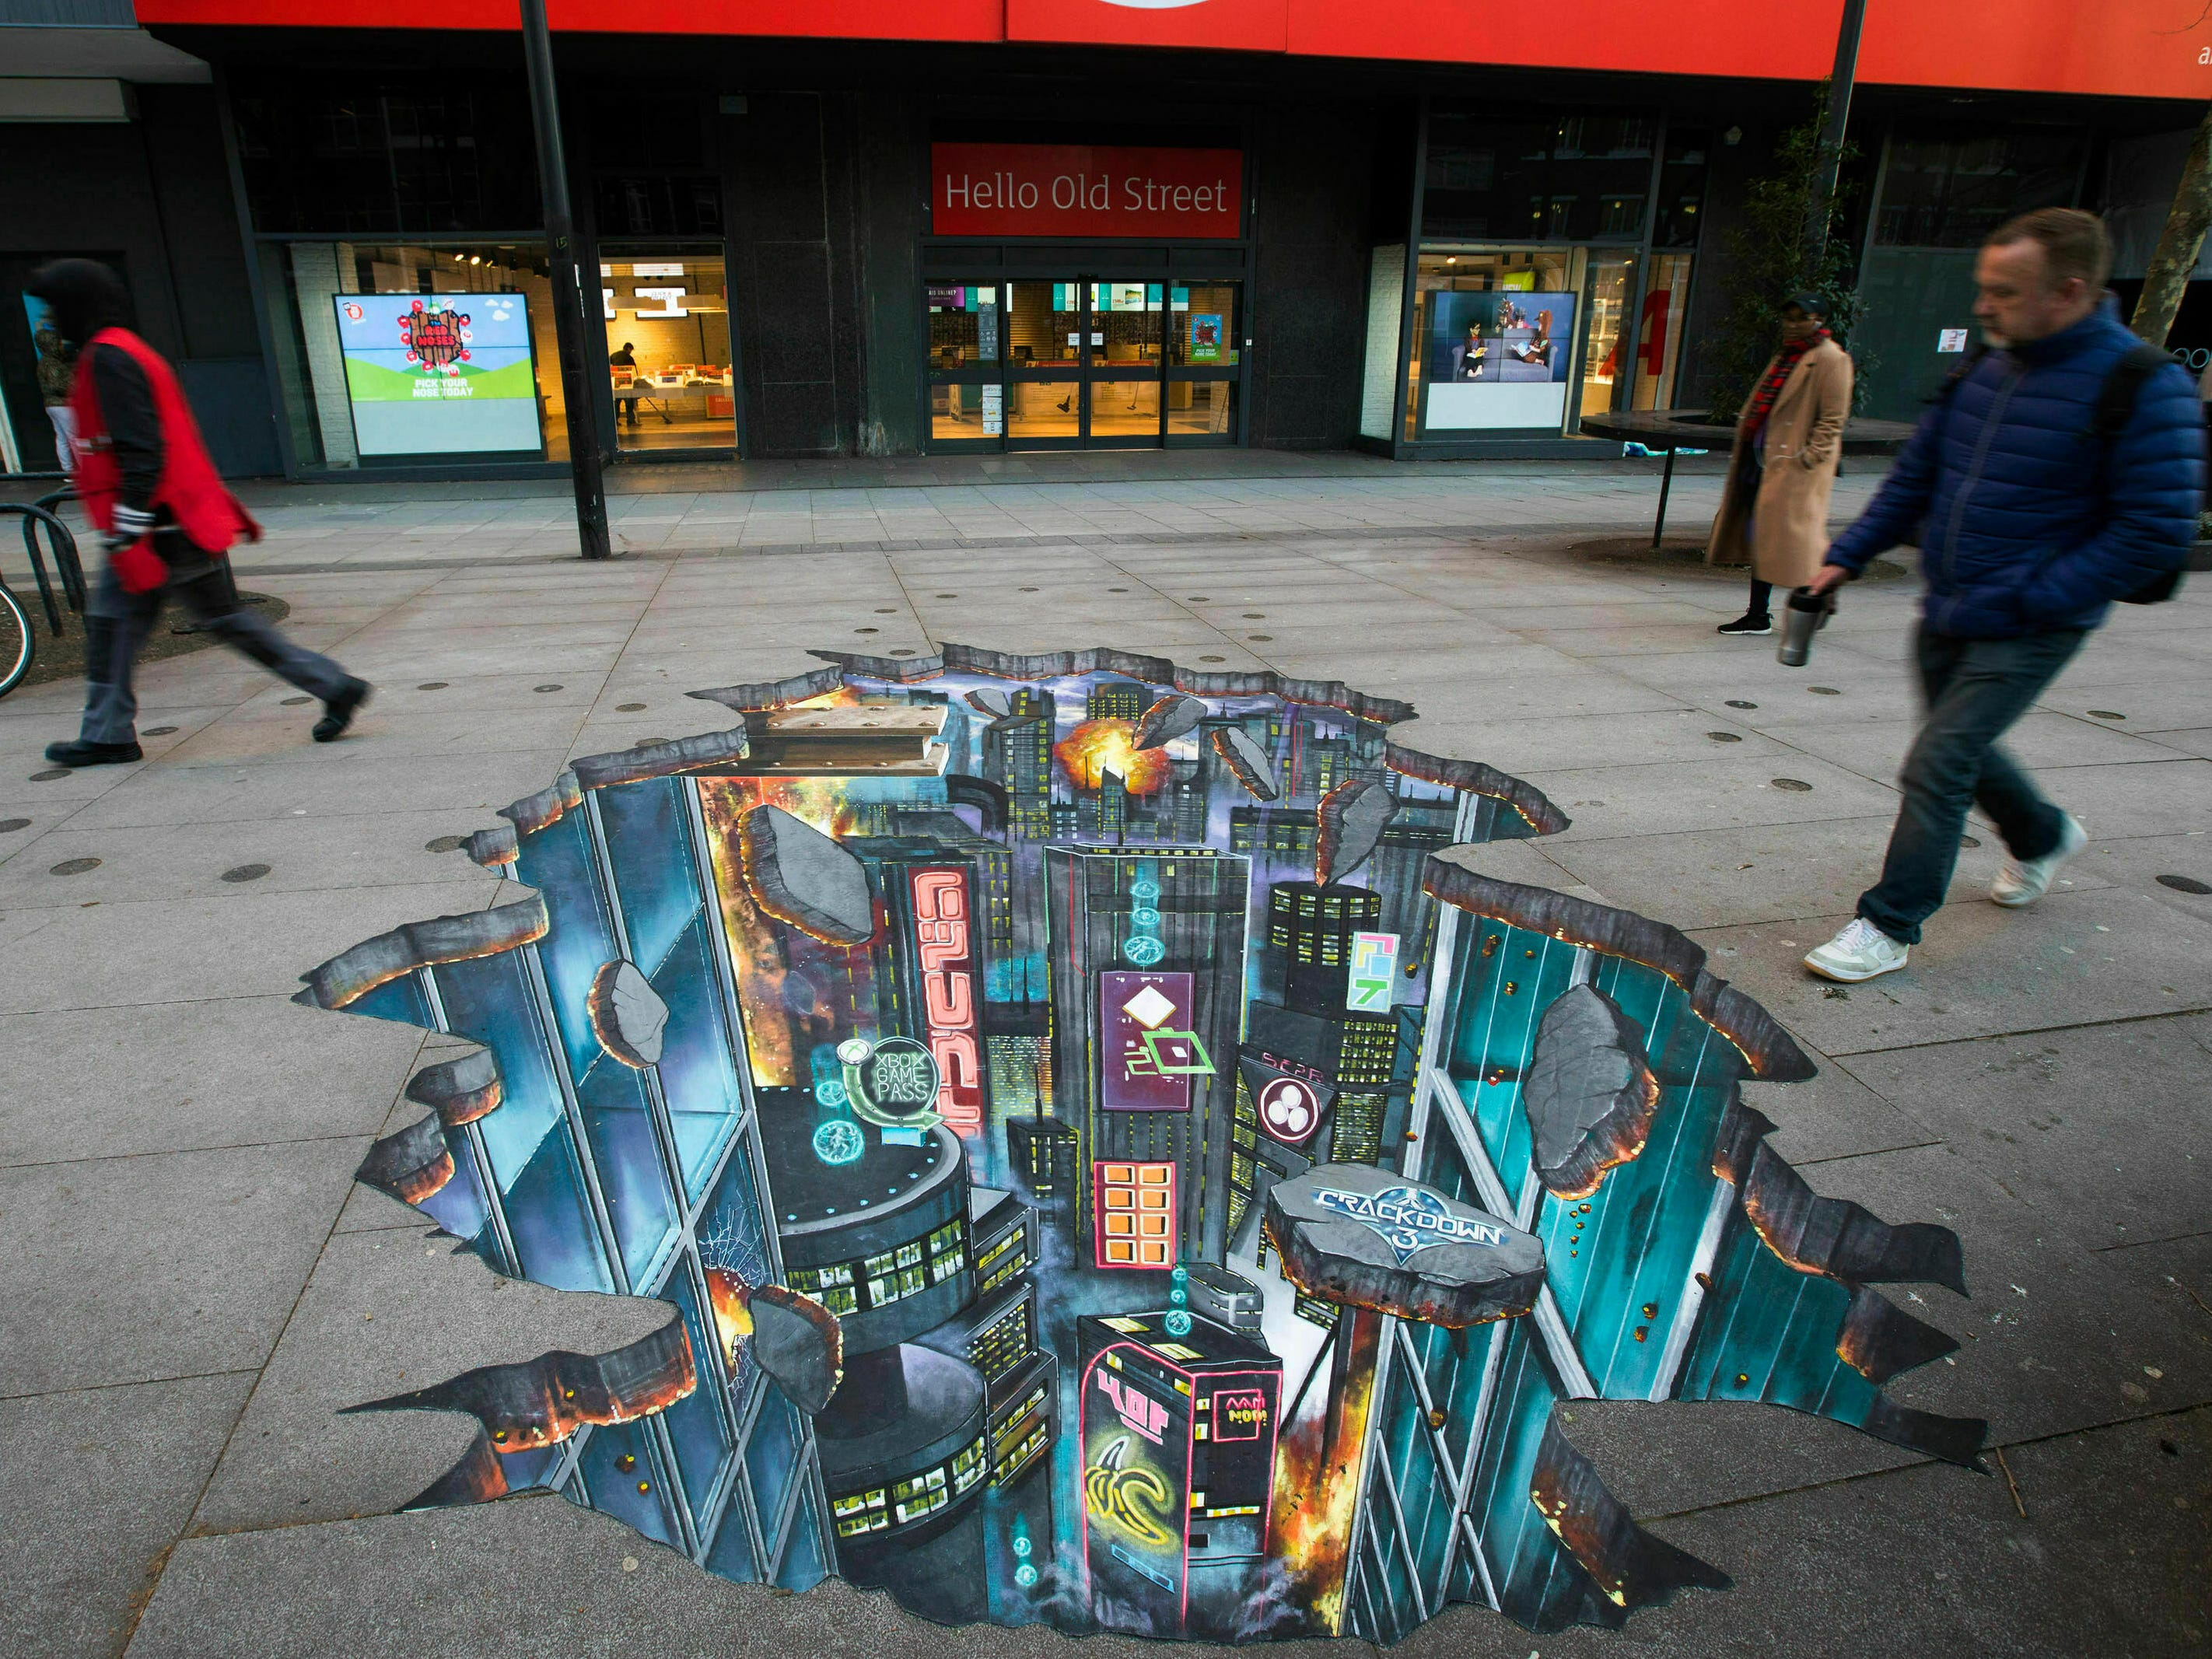 Pedestrians pass by a 3D street artwork outside Argos in London depicting a subterranean world under the pavement, created by 3D Joe & Max to celebrate the release of Crackdown 3 on Xbox, Friday Feb. 15, 2019. The artists have designed the piece to reflect a 'Portal to Pacific City', as featured in the game.